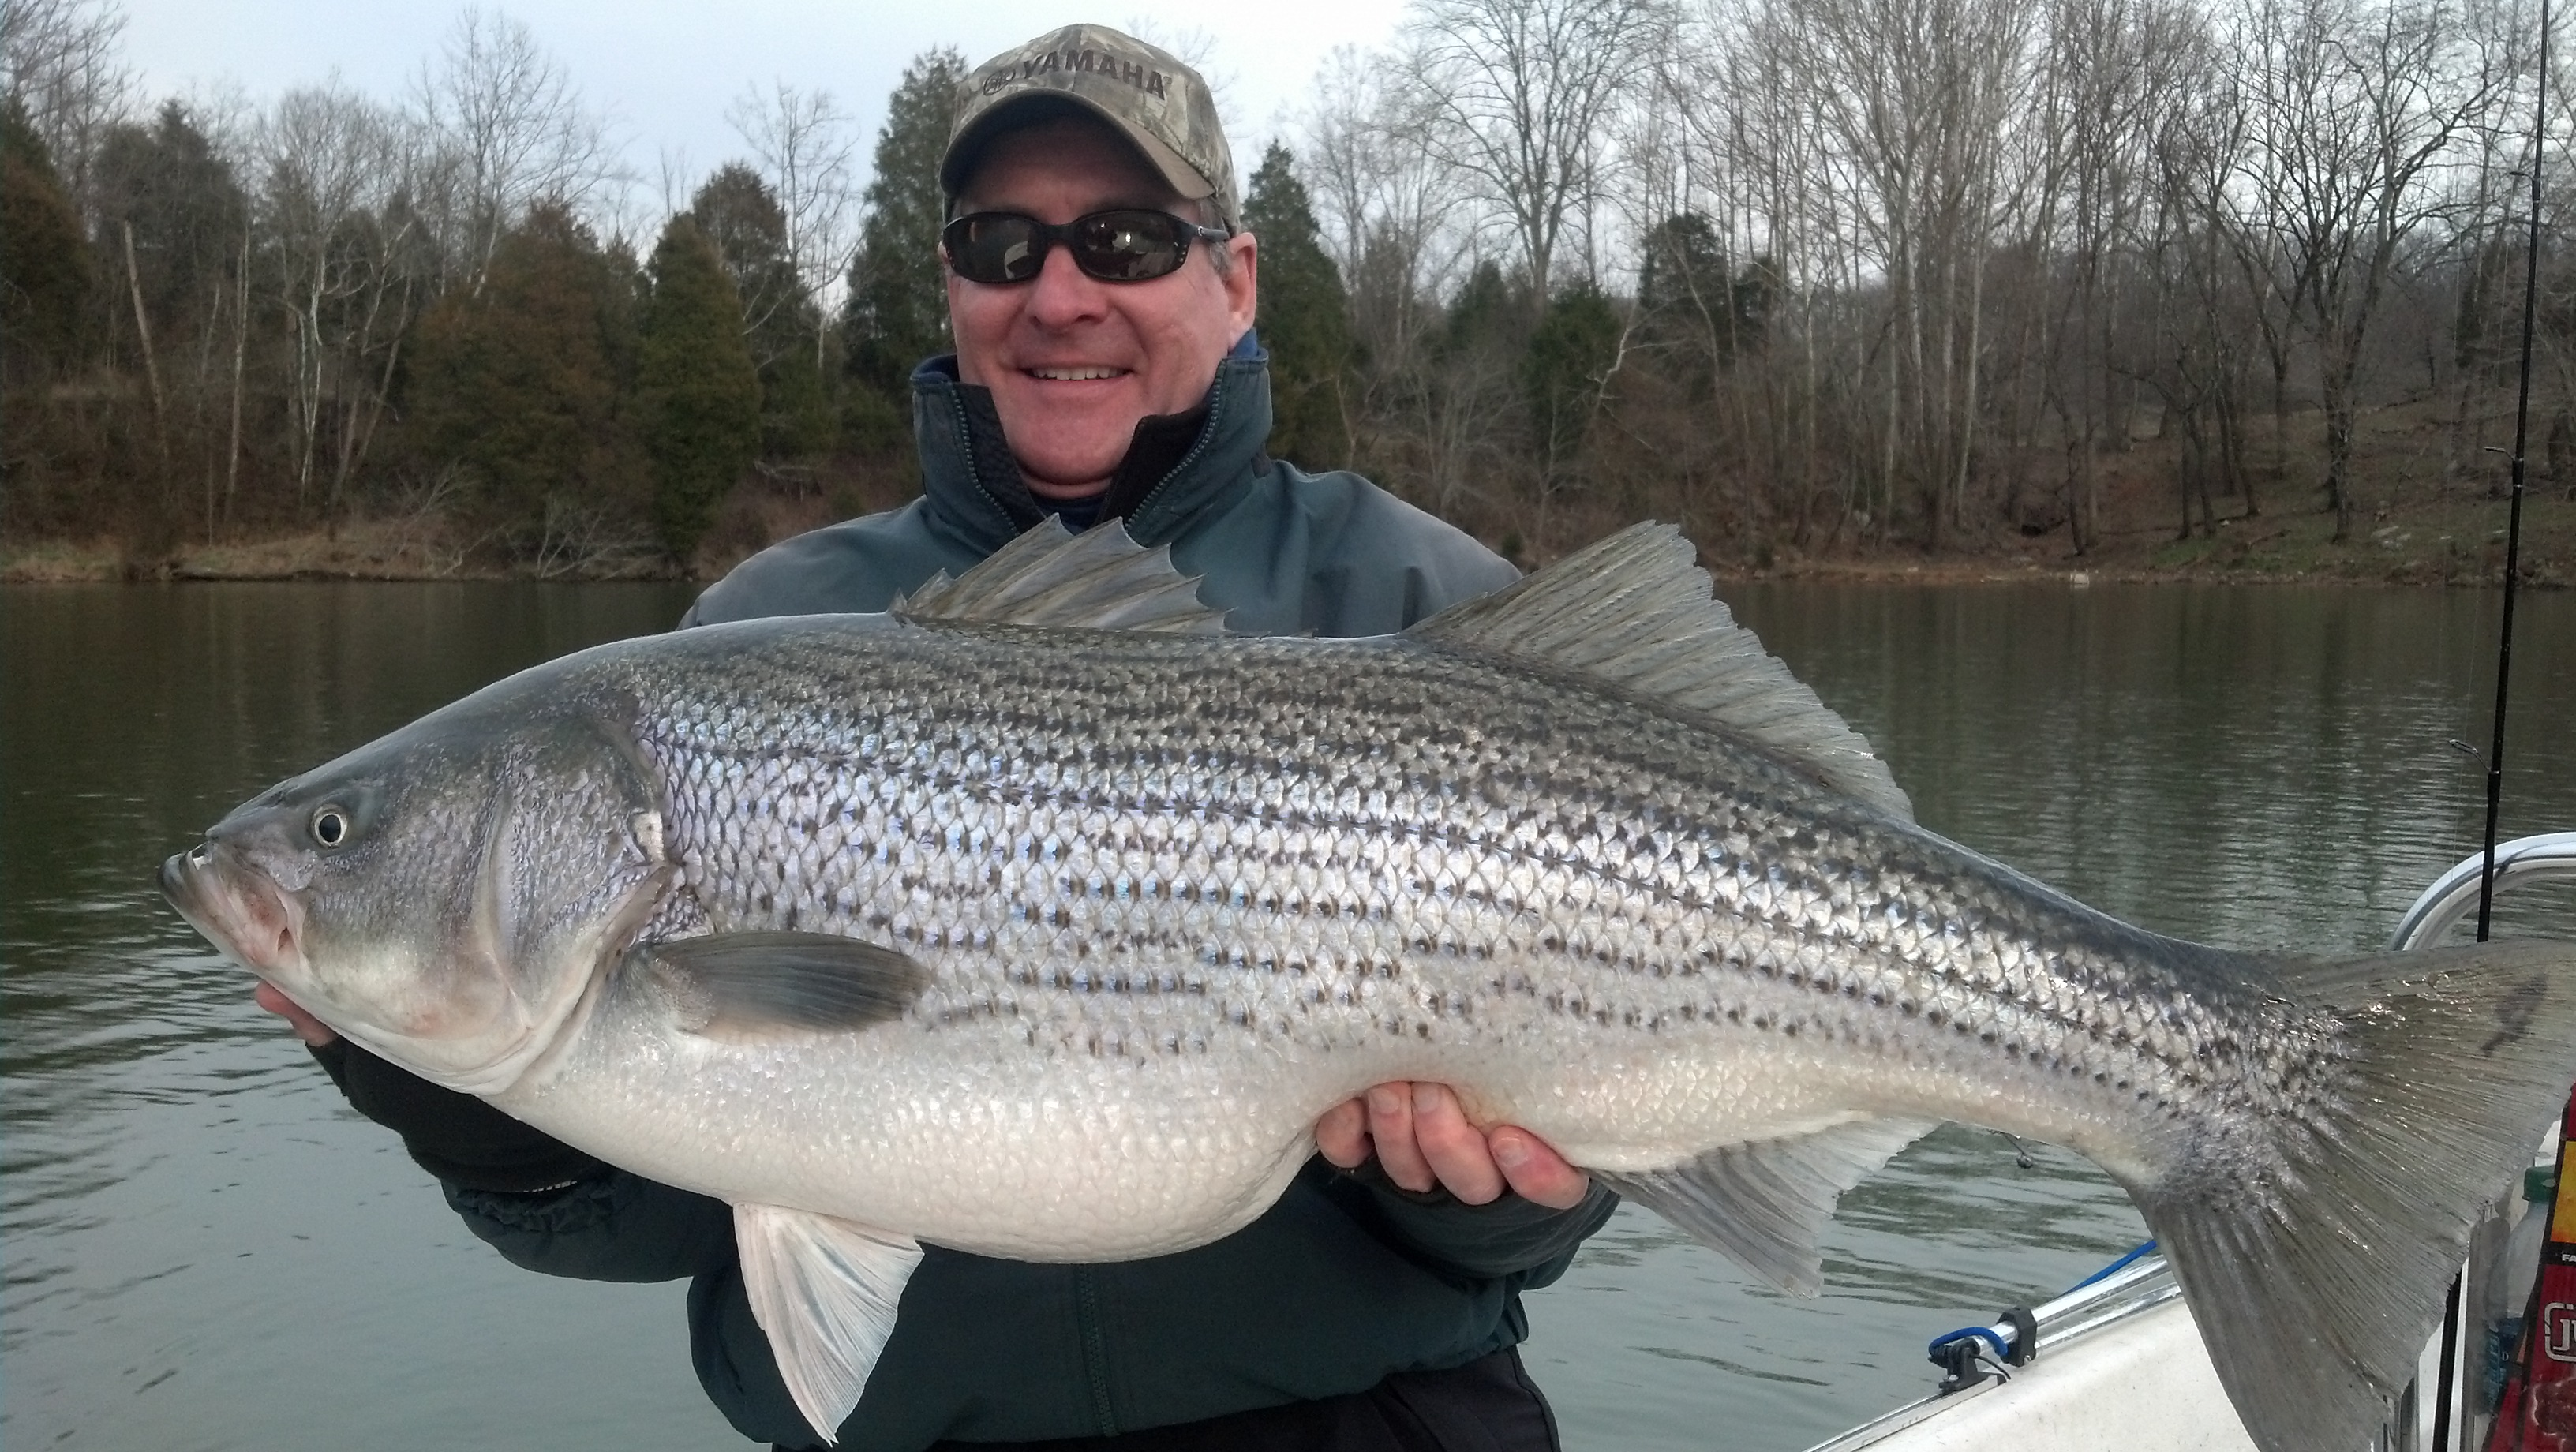 Jay 39 s striper guide service is now providing novice and for Tennessee fishing guide